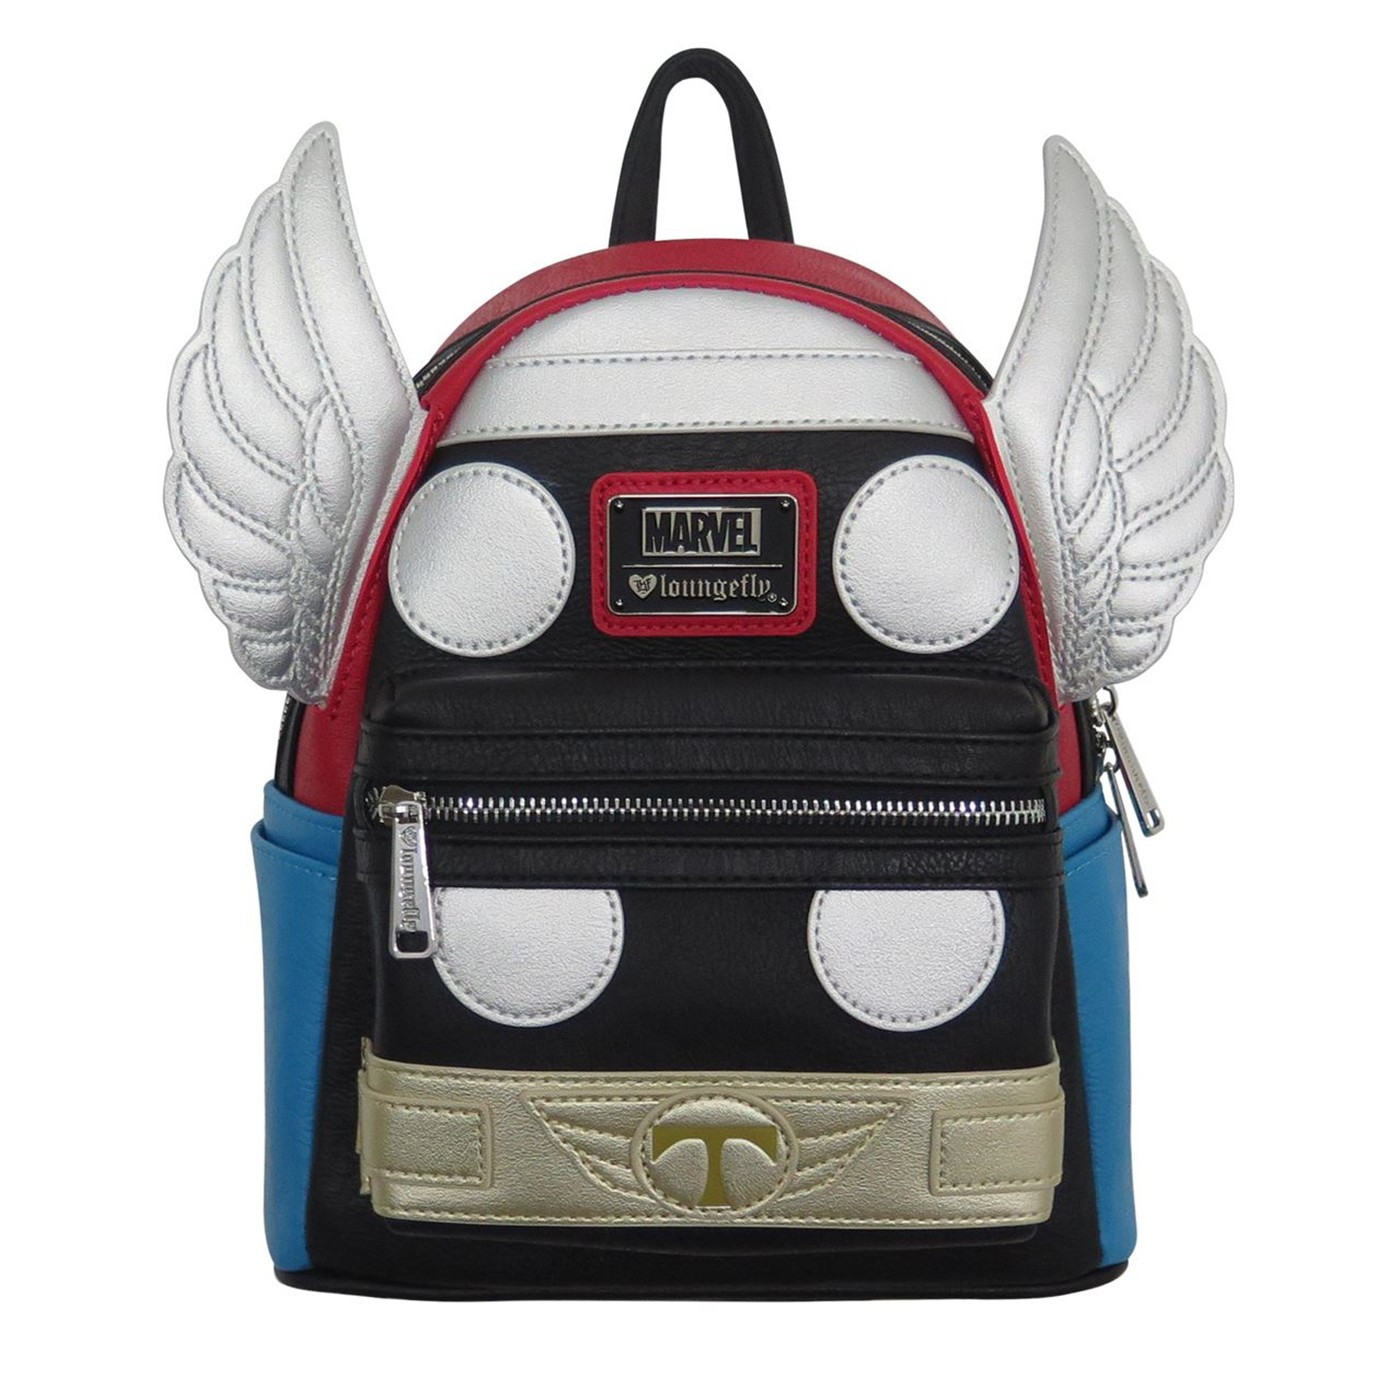 Thor Applique Detailed Cosplay Loungefly Mini Backpack